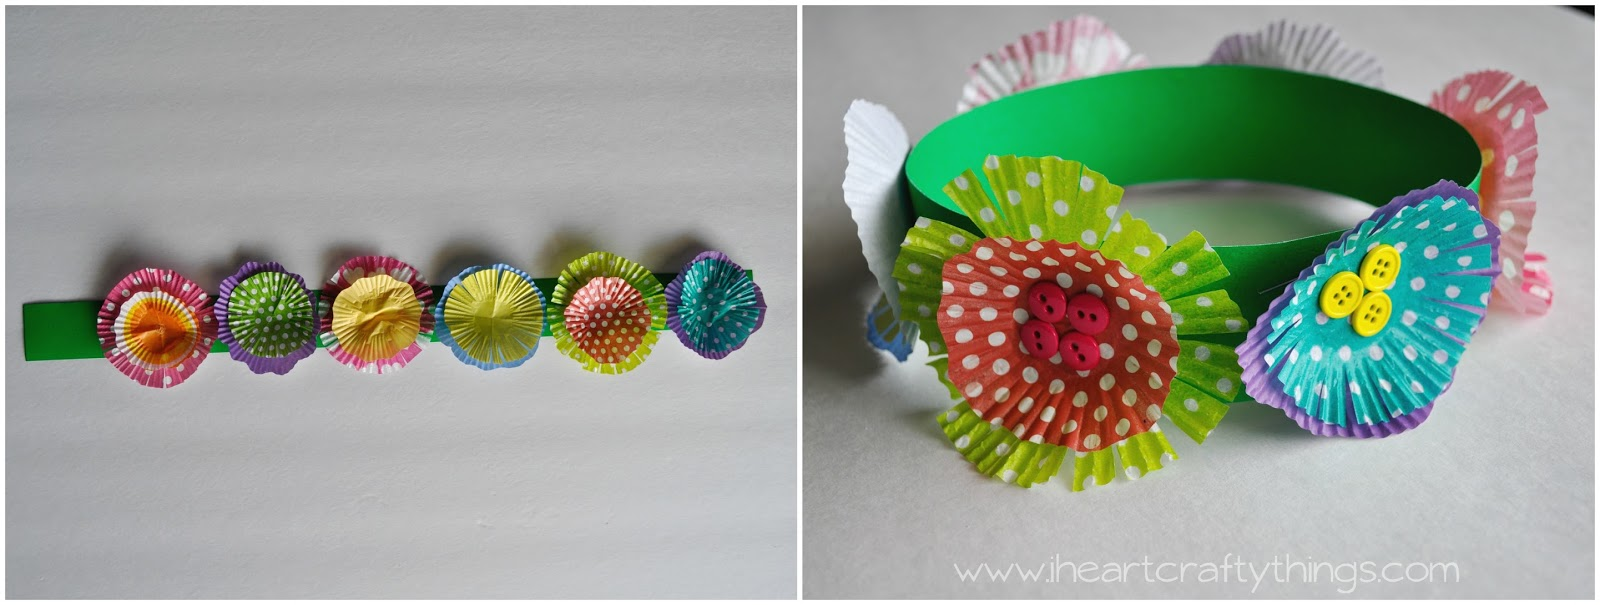 Flower crown out of cupcake liners i heart crafty things 5 fold the poster board strip into a circle lining your pencil mark up to the opposite edge of the strip use your stapler to put a staple at the top and izmirmasajfo Images